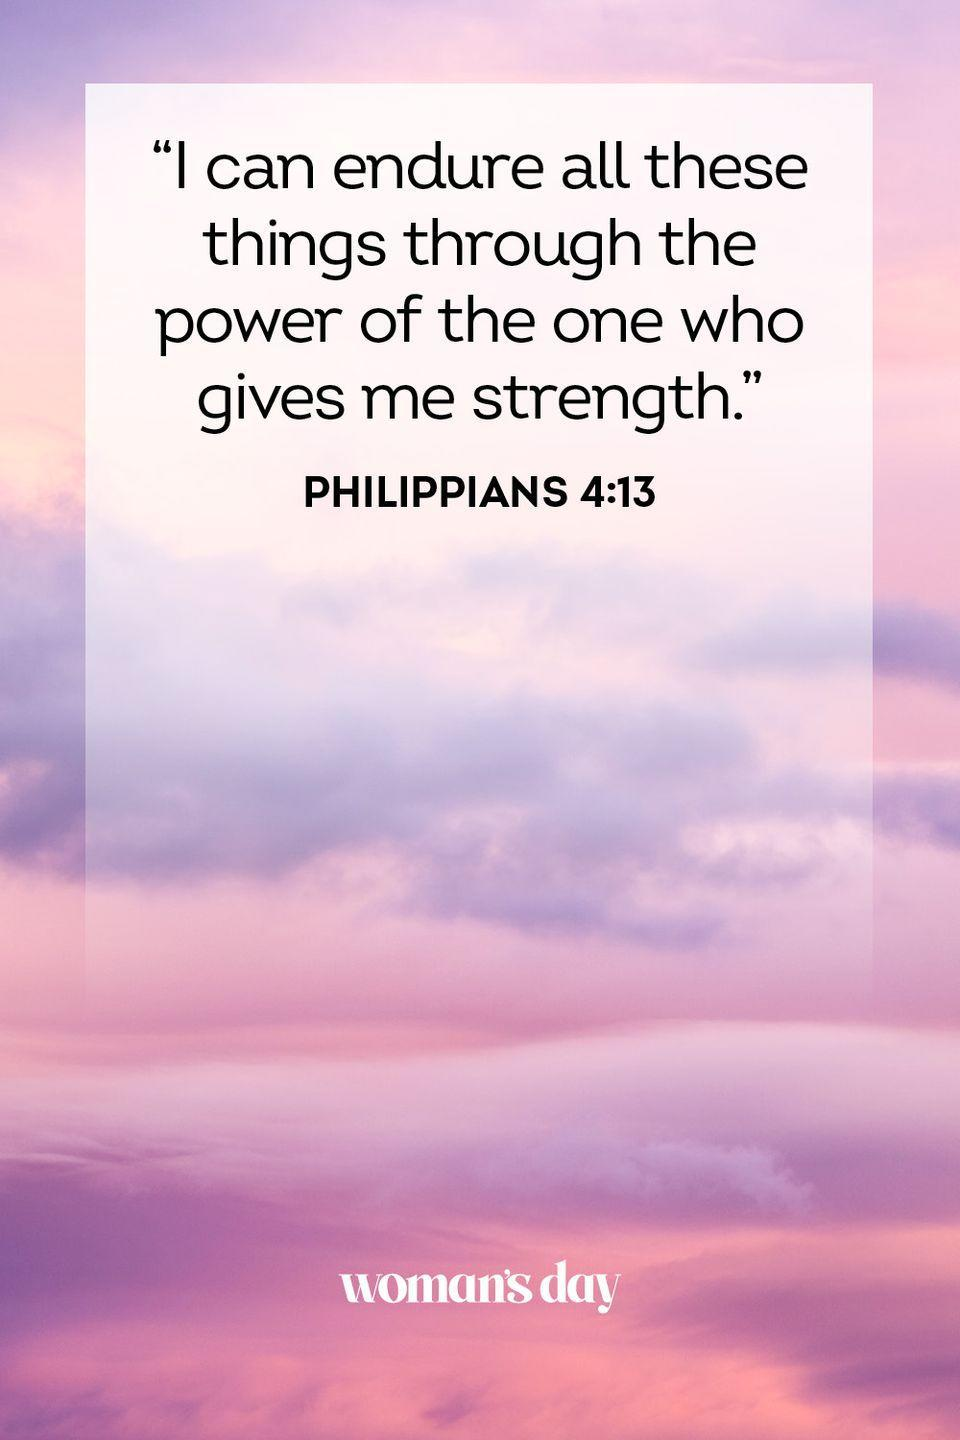 """<p>""""I can endure all these things through the power of the one who gives me strength."""" — Philippians 4:13</p><p><strong>The Good News: </strong>There are a lot of rules in the Bible, but the most important ones to follow are the commandments that God set forth via Moses. If we persist in abiding by those, we can help make our lives and our communities a better place.</p>"""